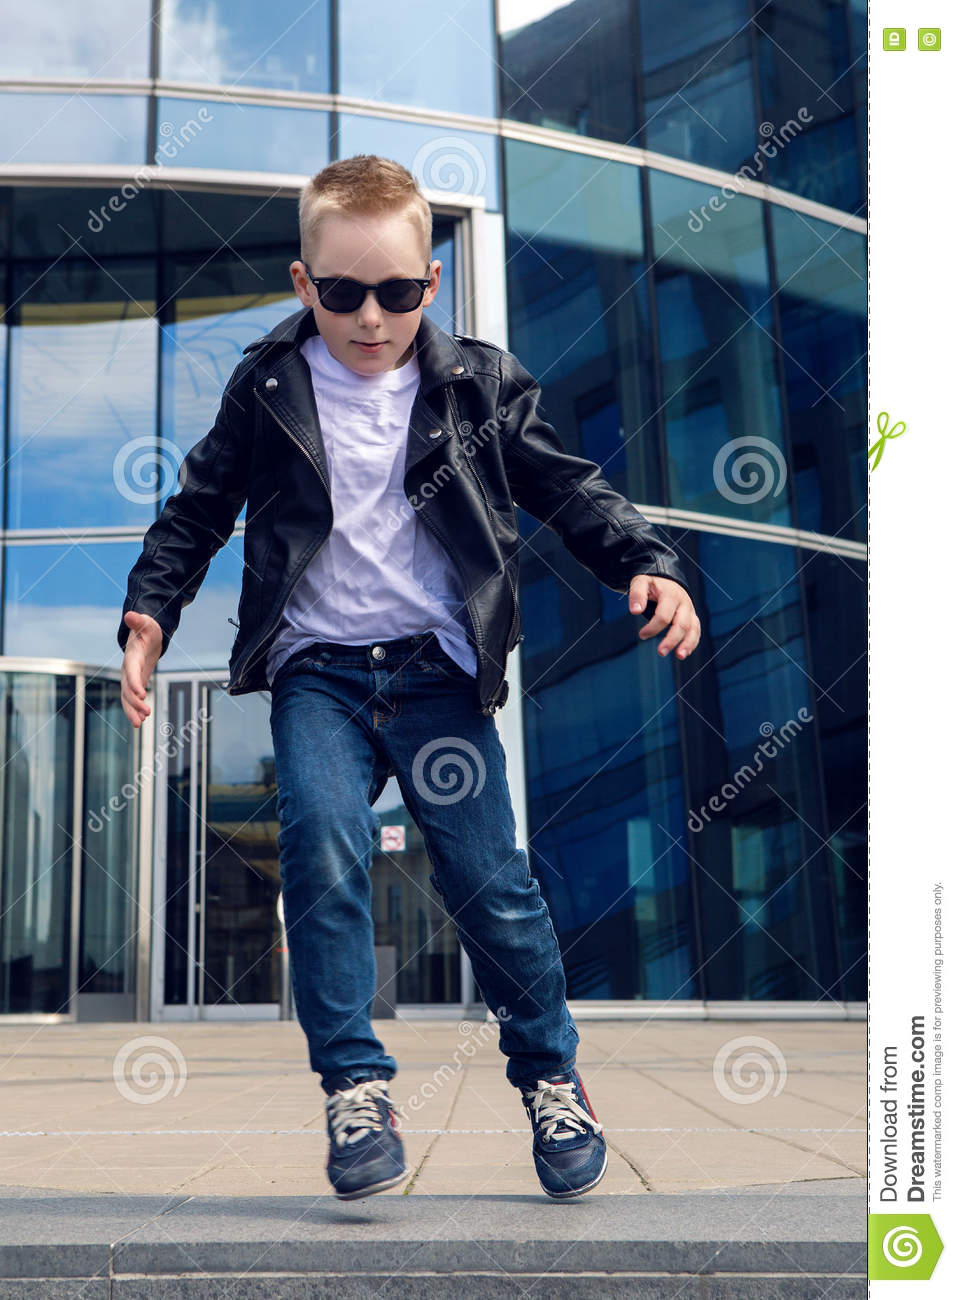 539b8cd0cb80 Baby Boy 7 - 8 Years In A Black Leather Jacket Dancing Stock Image ...